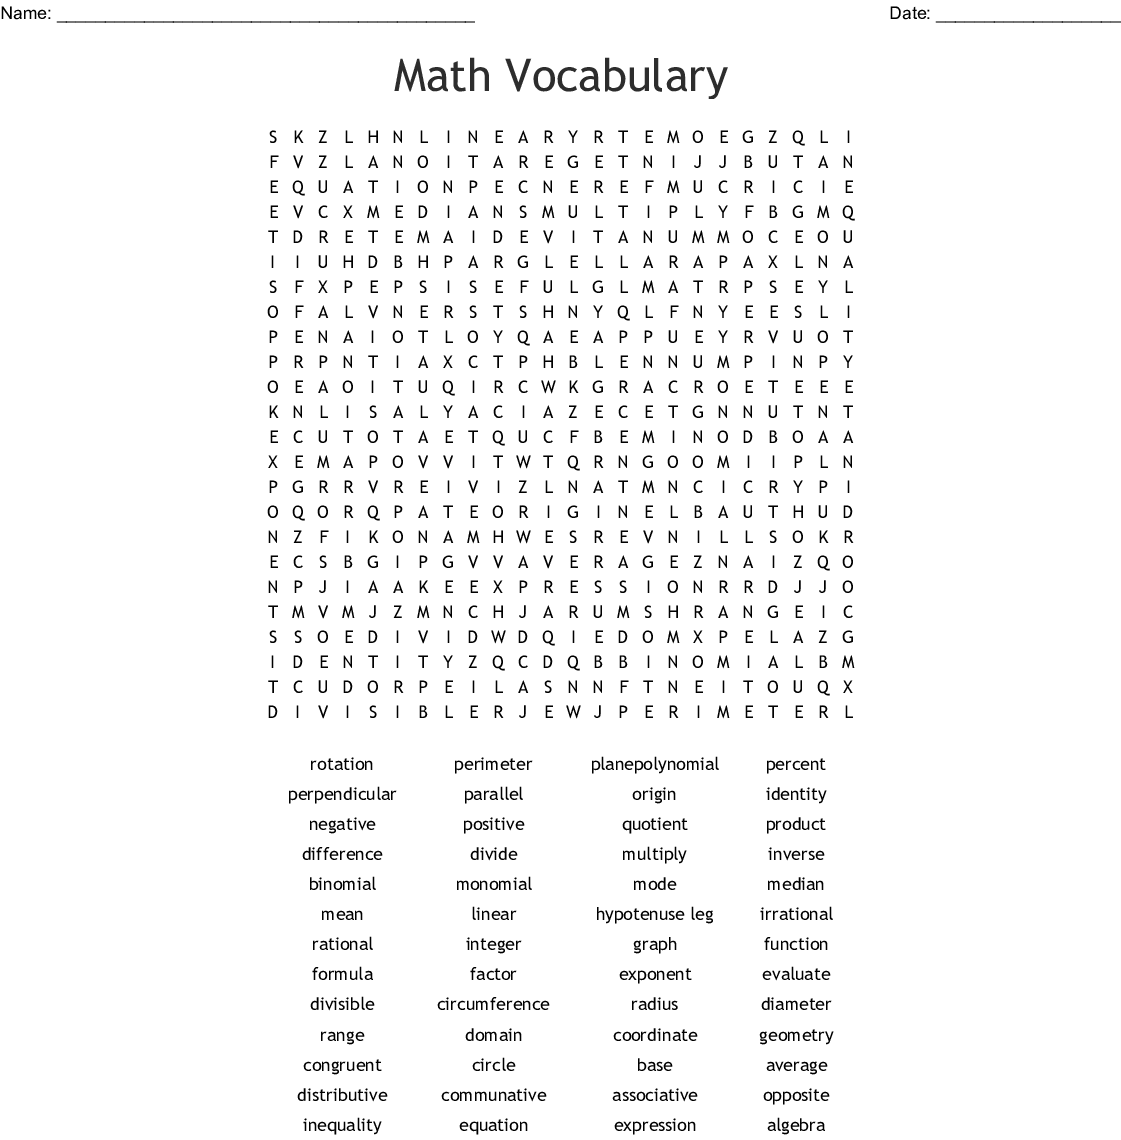 7th Grade Math Vocabulary Words Word Search